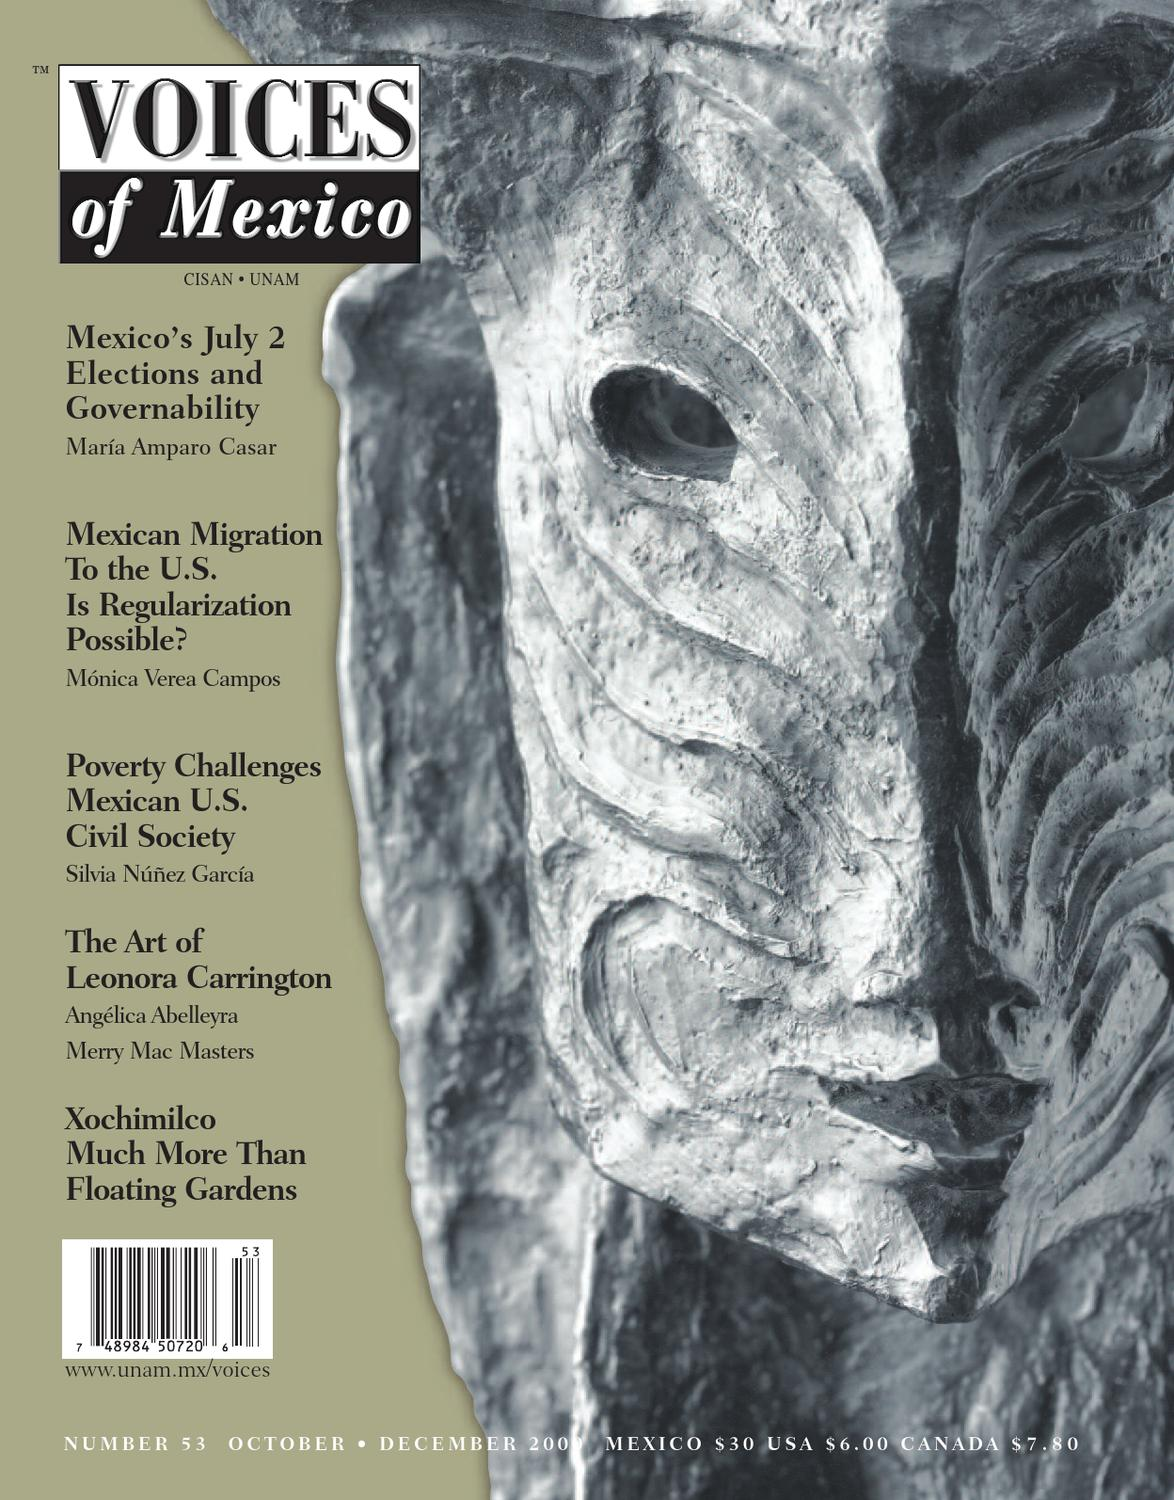 df6354a9f20 Voices of Mexico issue 53 by cisan unam - issuu